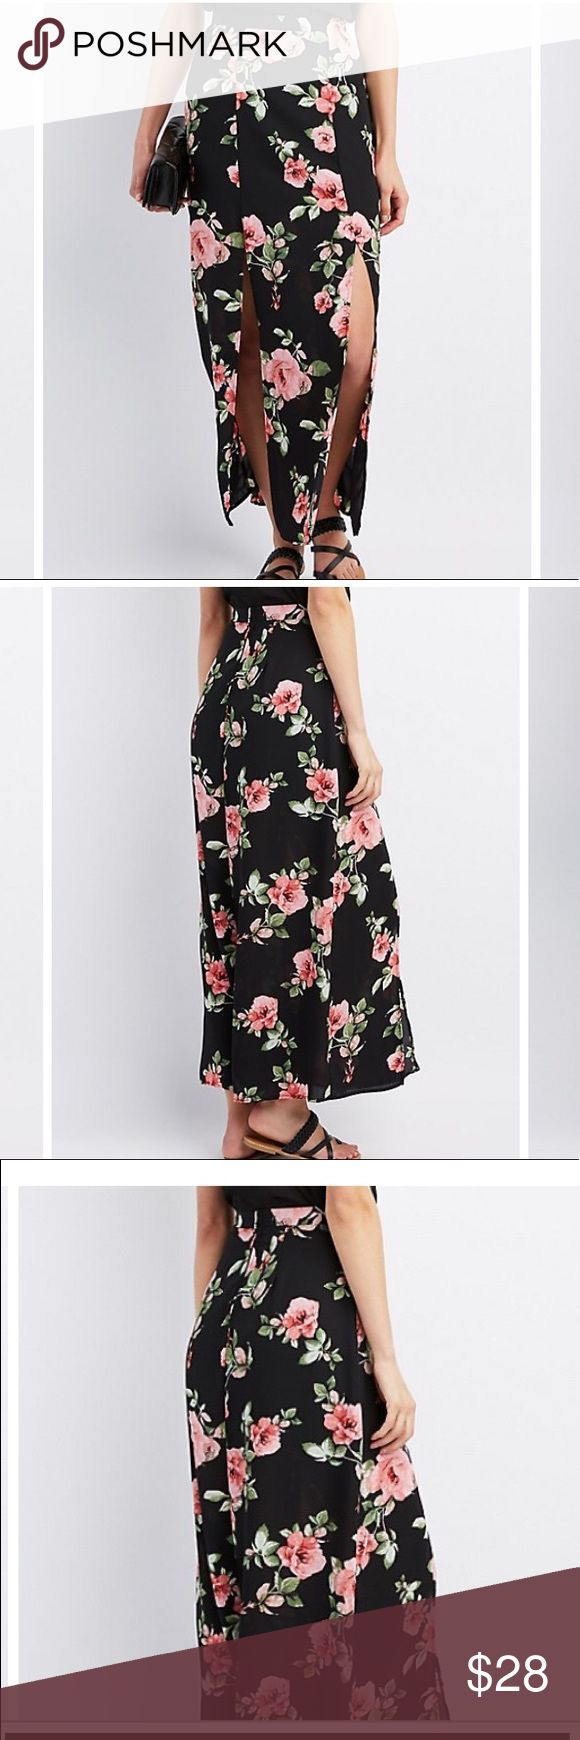 Floral double slit maxi skirt Super cute double slit maxi skirt! I ordered it and just isn't my size has a zipper in the back to zip up! Perfect for a girls night out!! Skirts Maxi